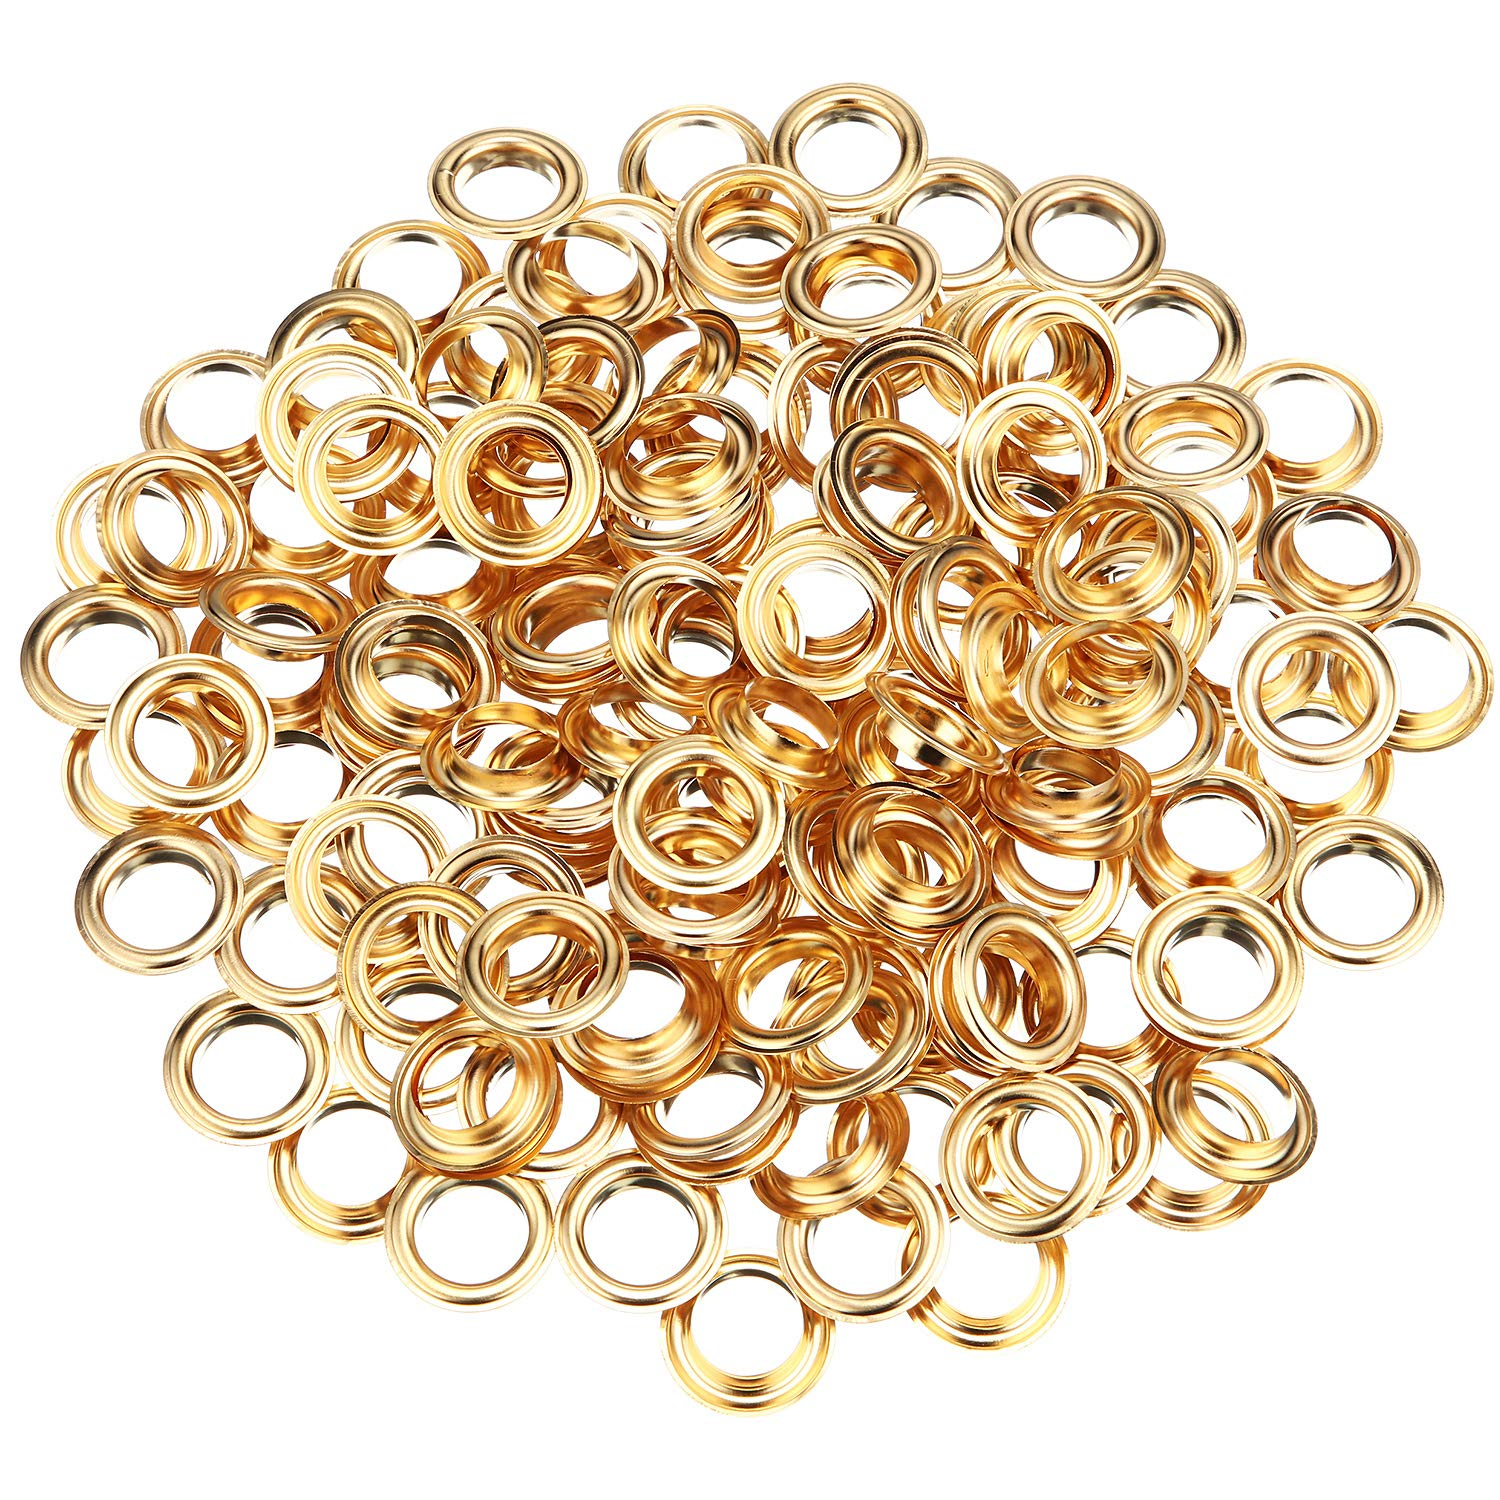 6.35 mm, Bronze 200 Pieces Metal Grommets Eyelets Self Backing with Flat Washer for Bead Clothes Leather Canvas Cores DIY Craft